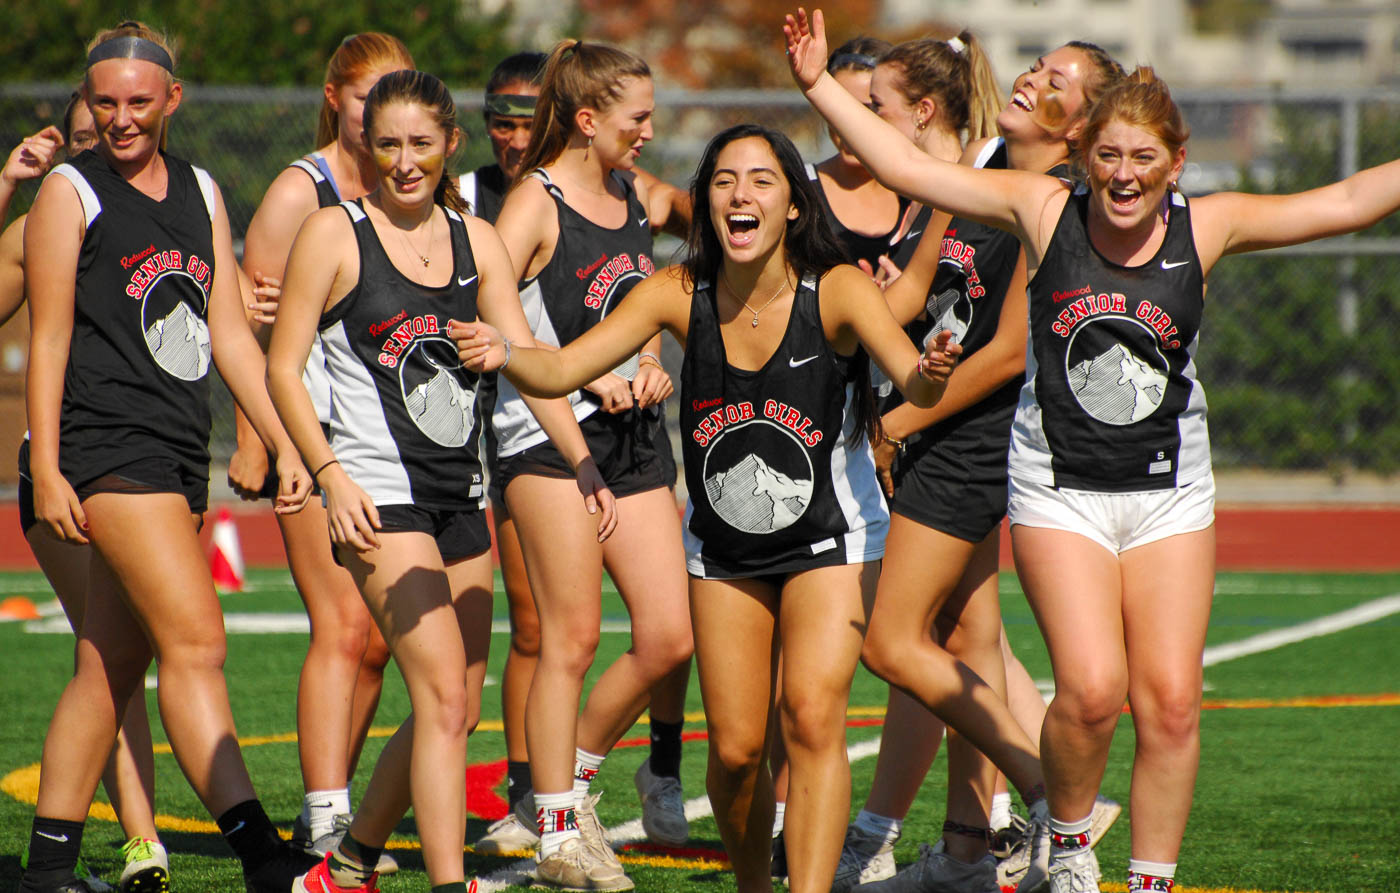 Senior Lily Carbullido and fellow teammates pump up the crowd after the senior girls' first touchdown during Klassy Kickoff.